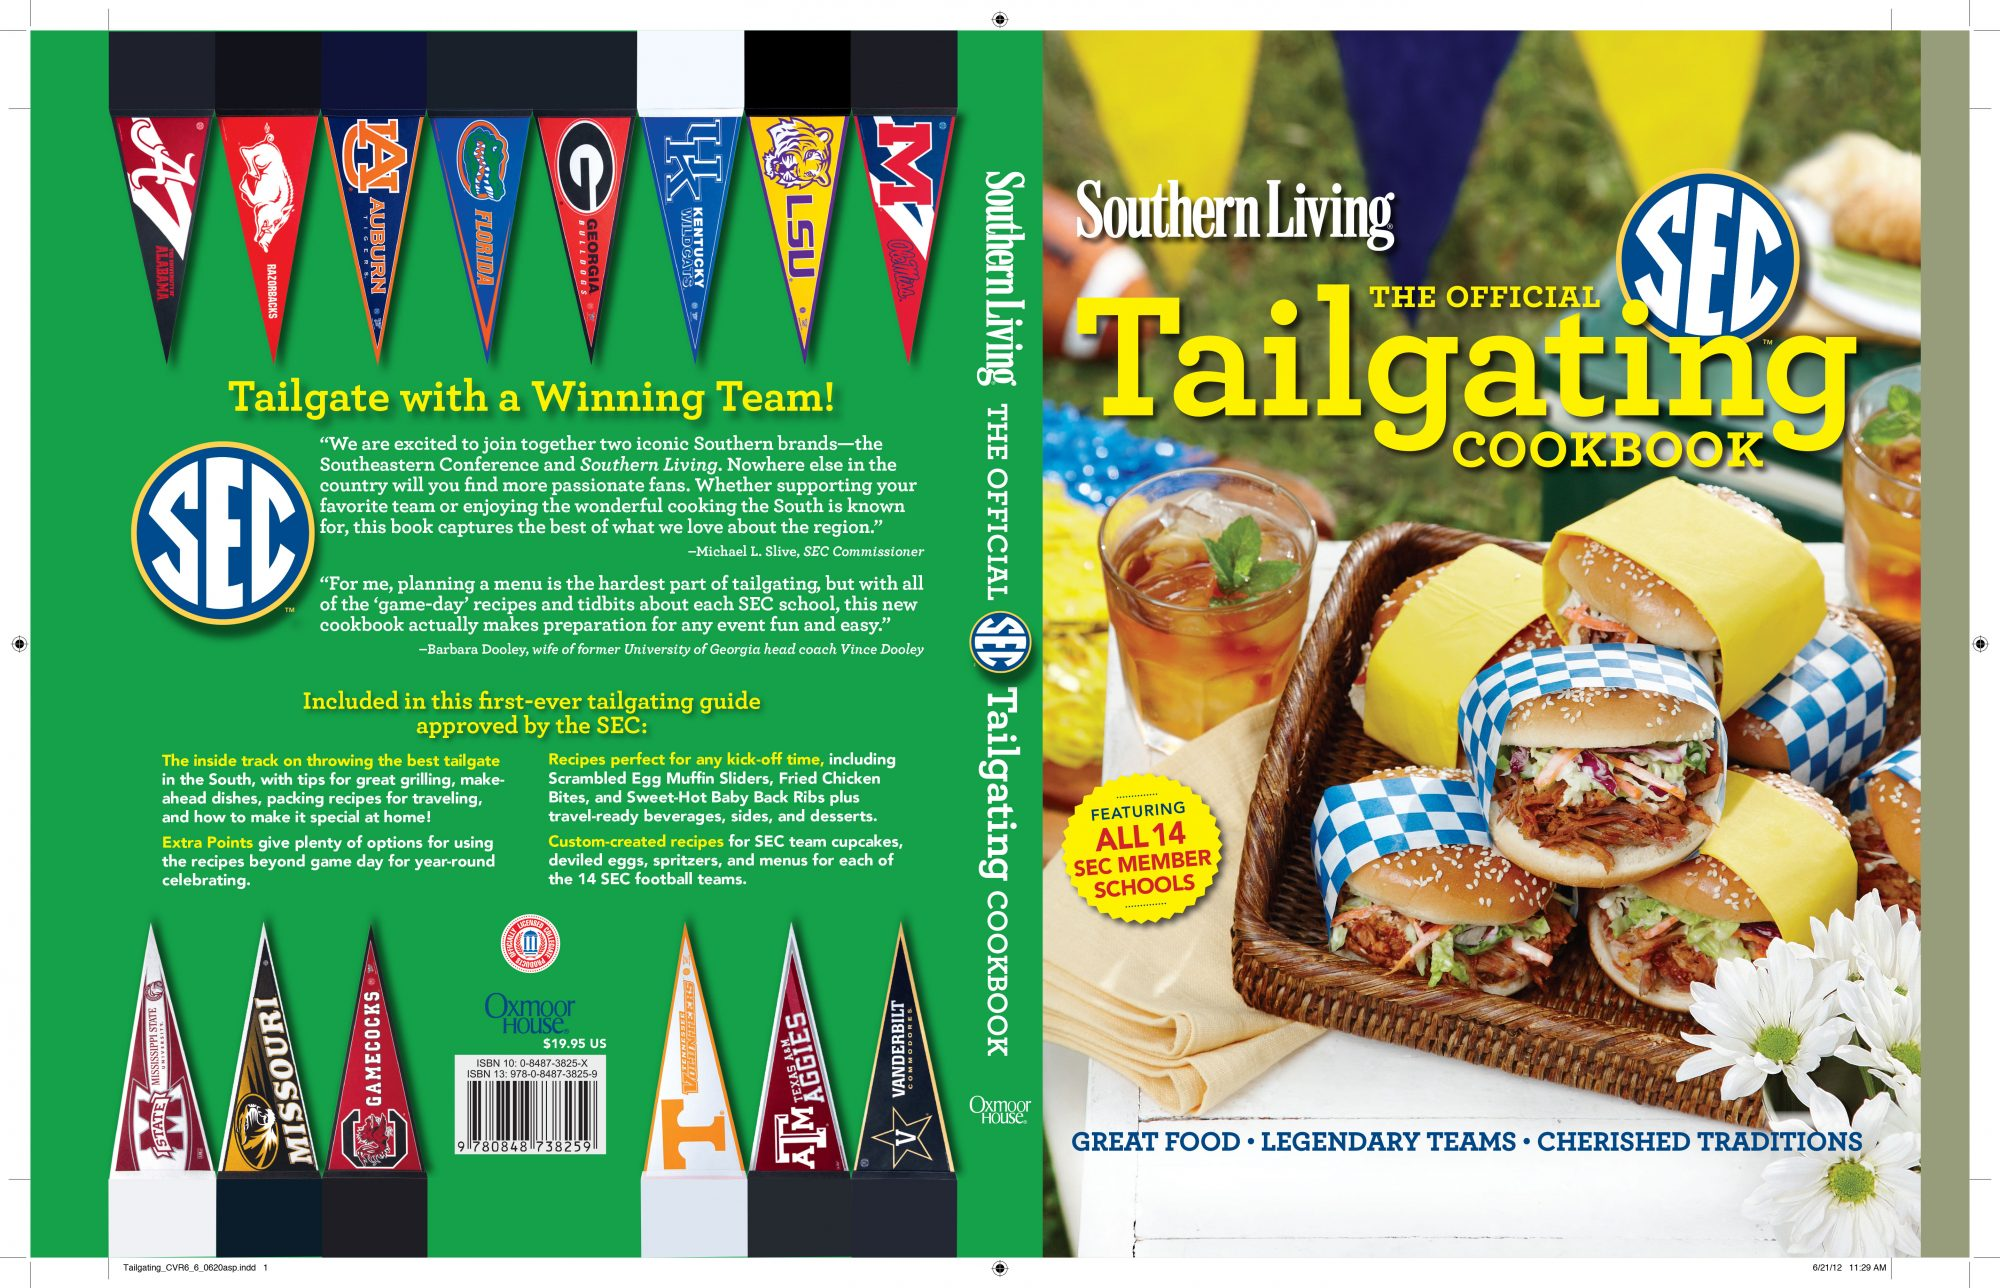 The Official SEC Tailgating Cookbook